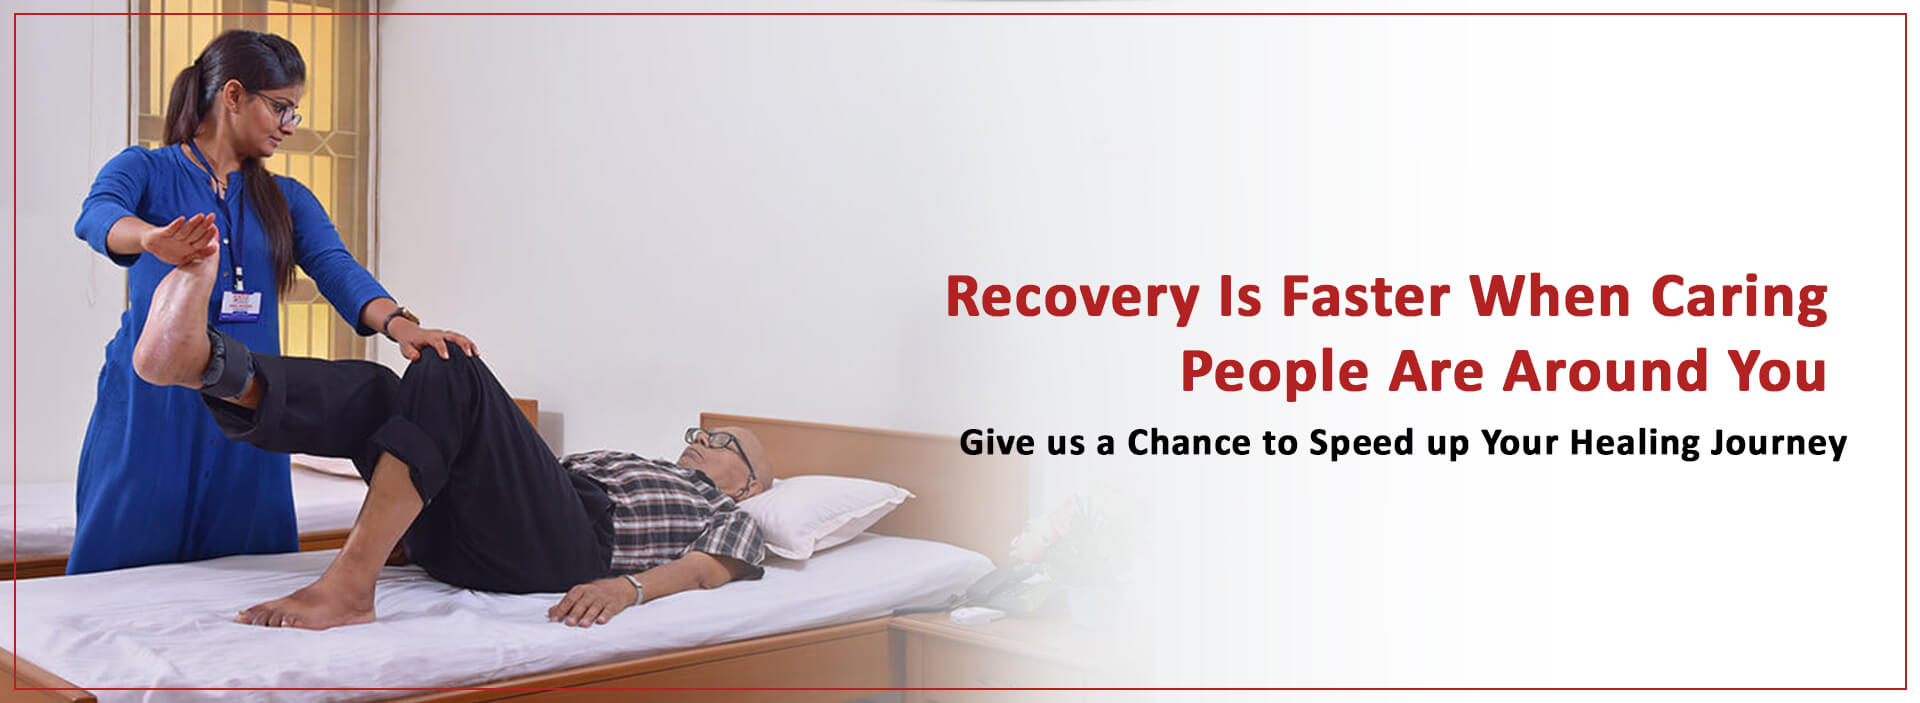 Recovery is faster when caring people are around